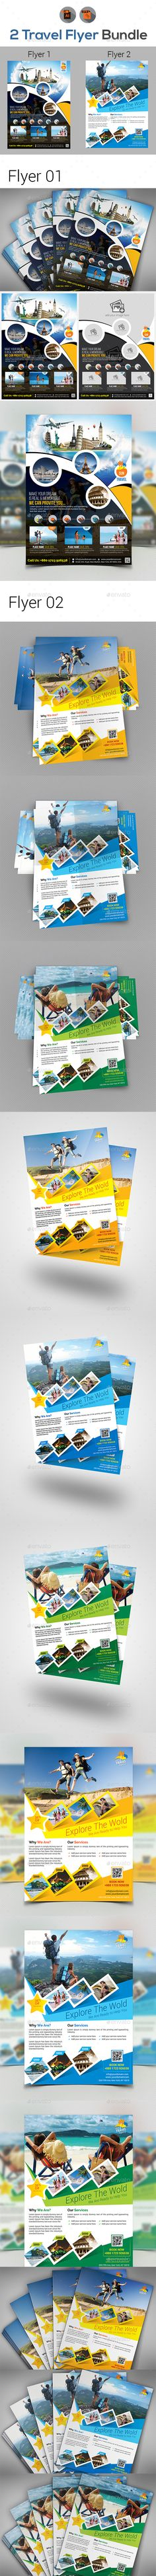 Travel Flyer Template Bundle - Vector EPS, AI Illustrator